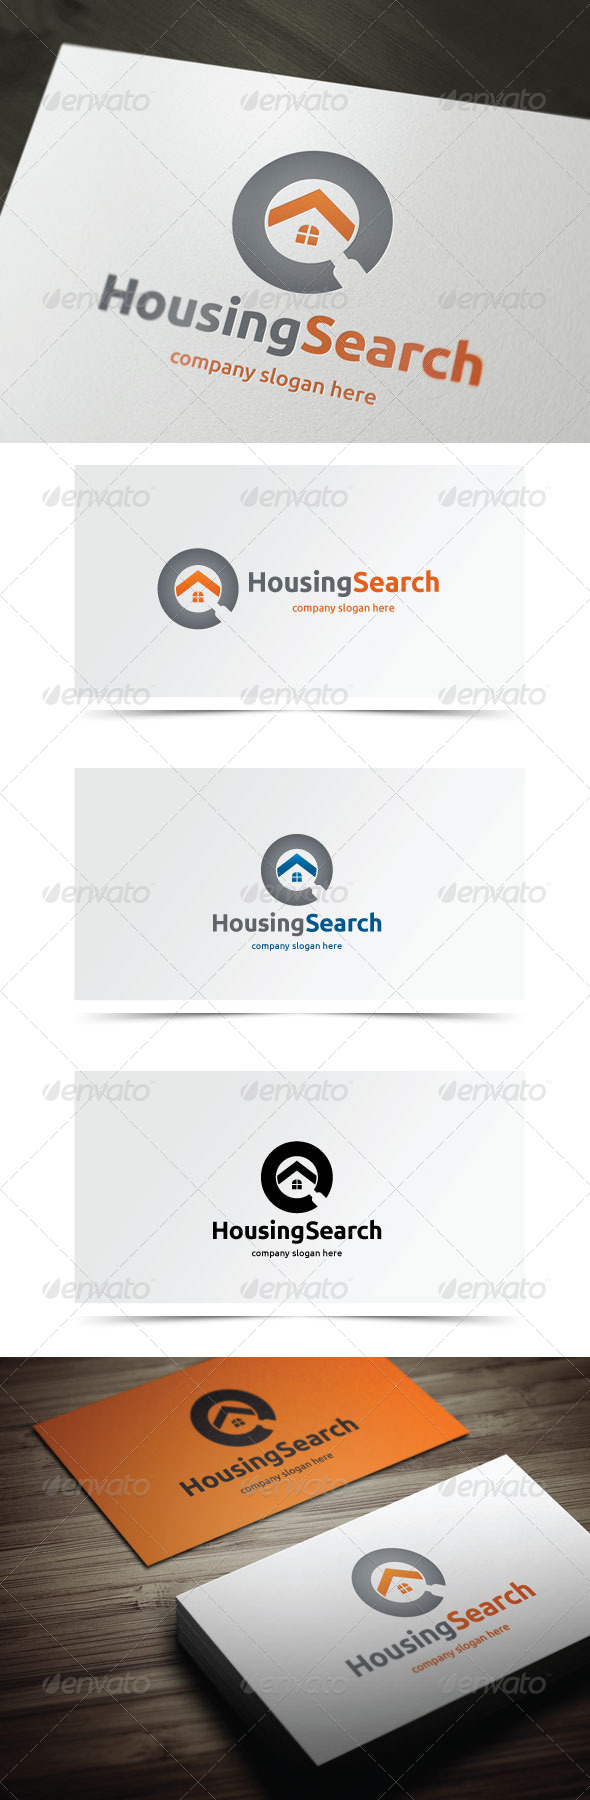 GraphicRiver Housing Search 5958853